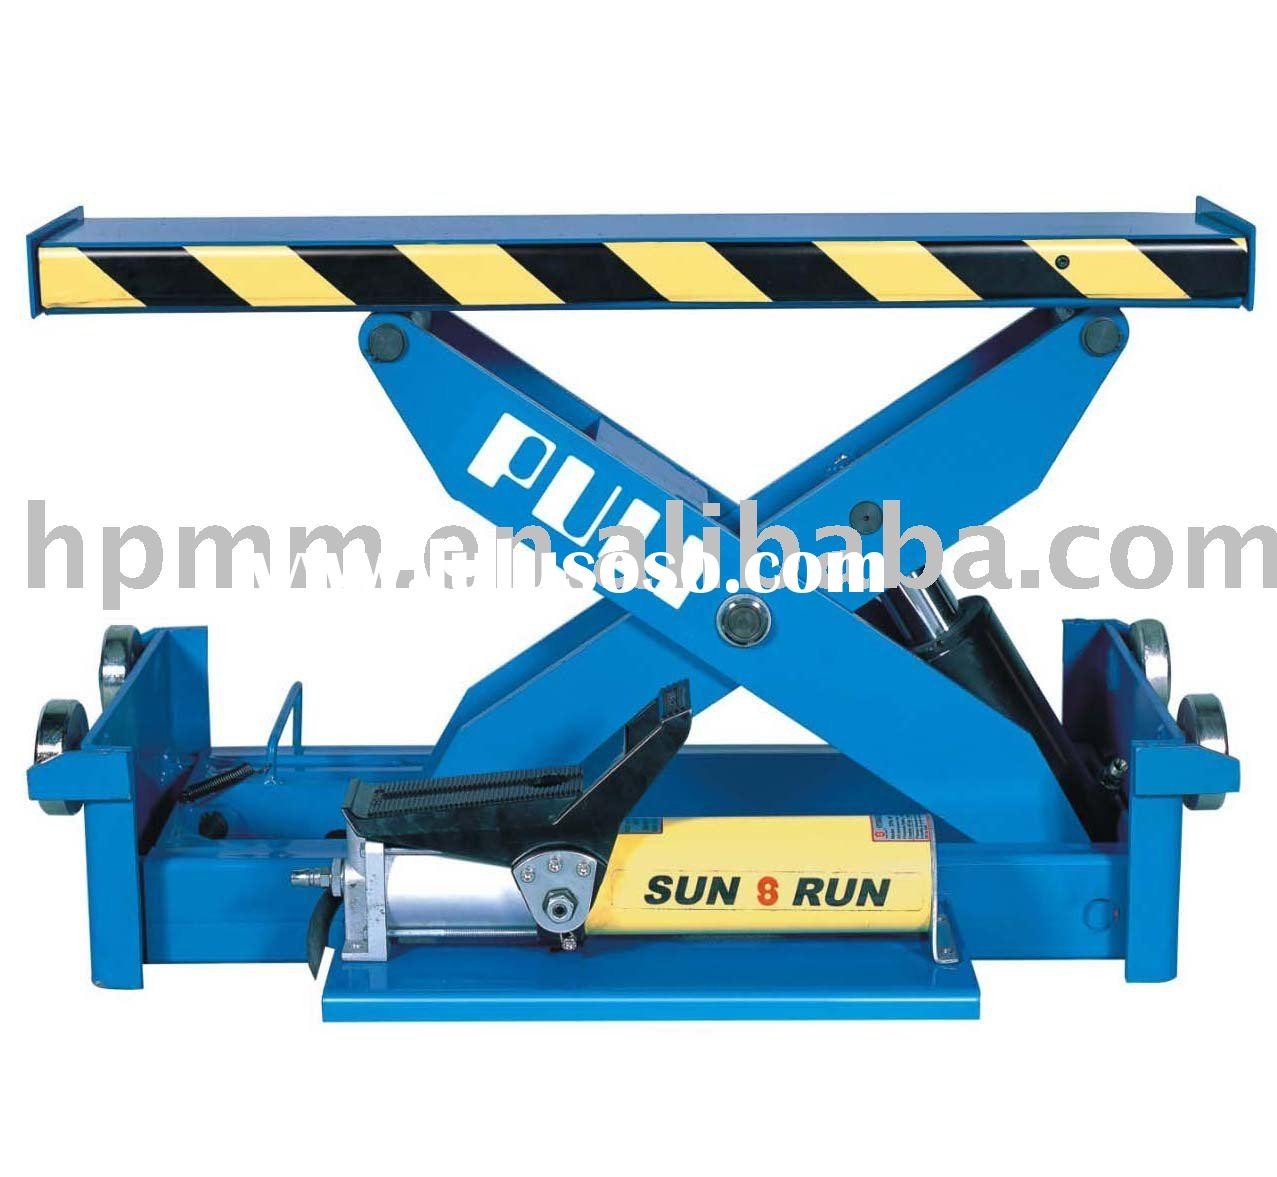 PL-X30Q Pneumatic Scissor Jack for 4 post lift, leveling jack, second lift, pro jack